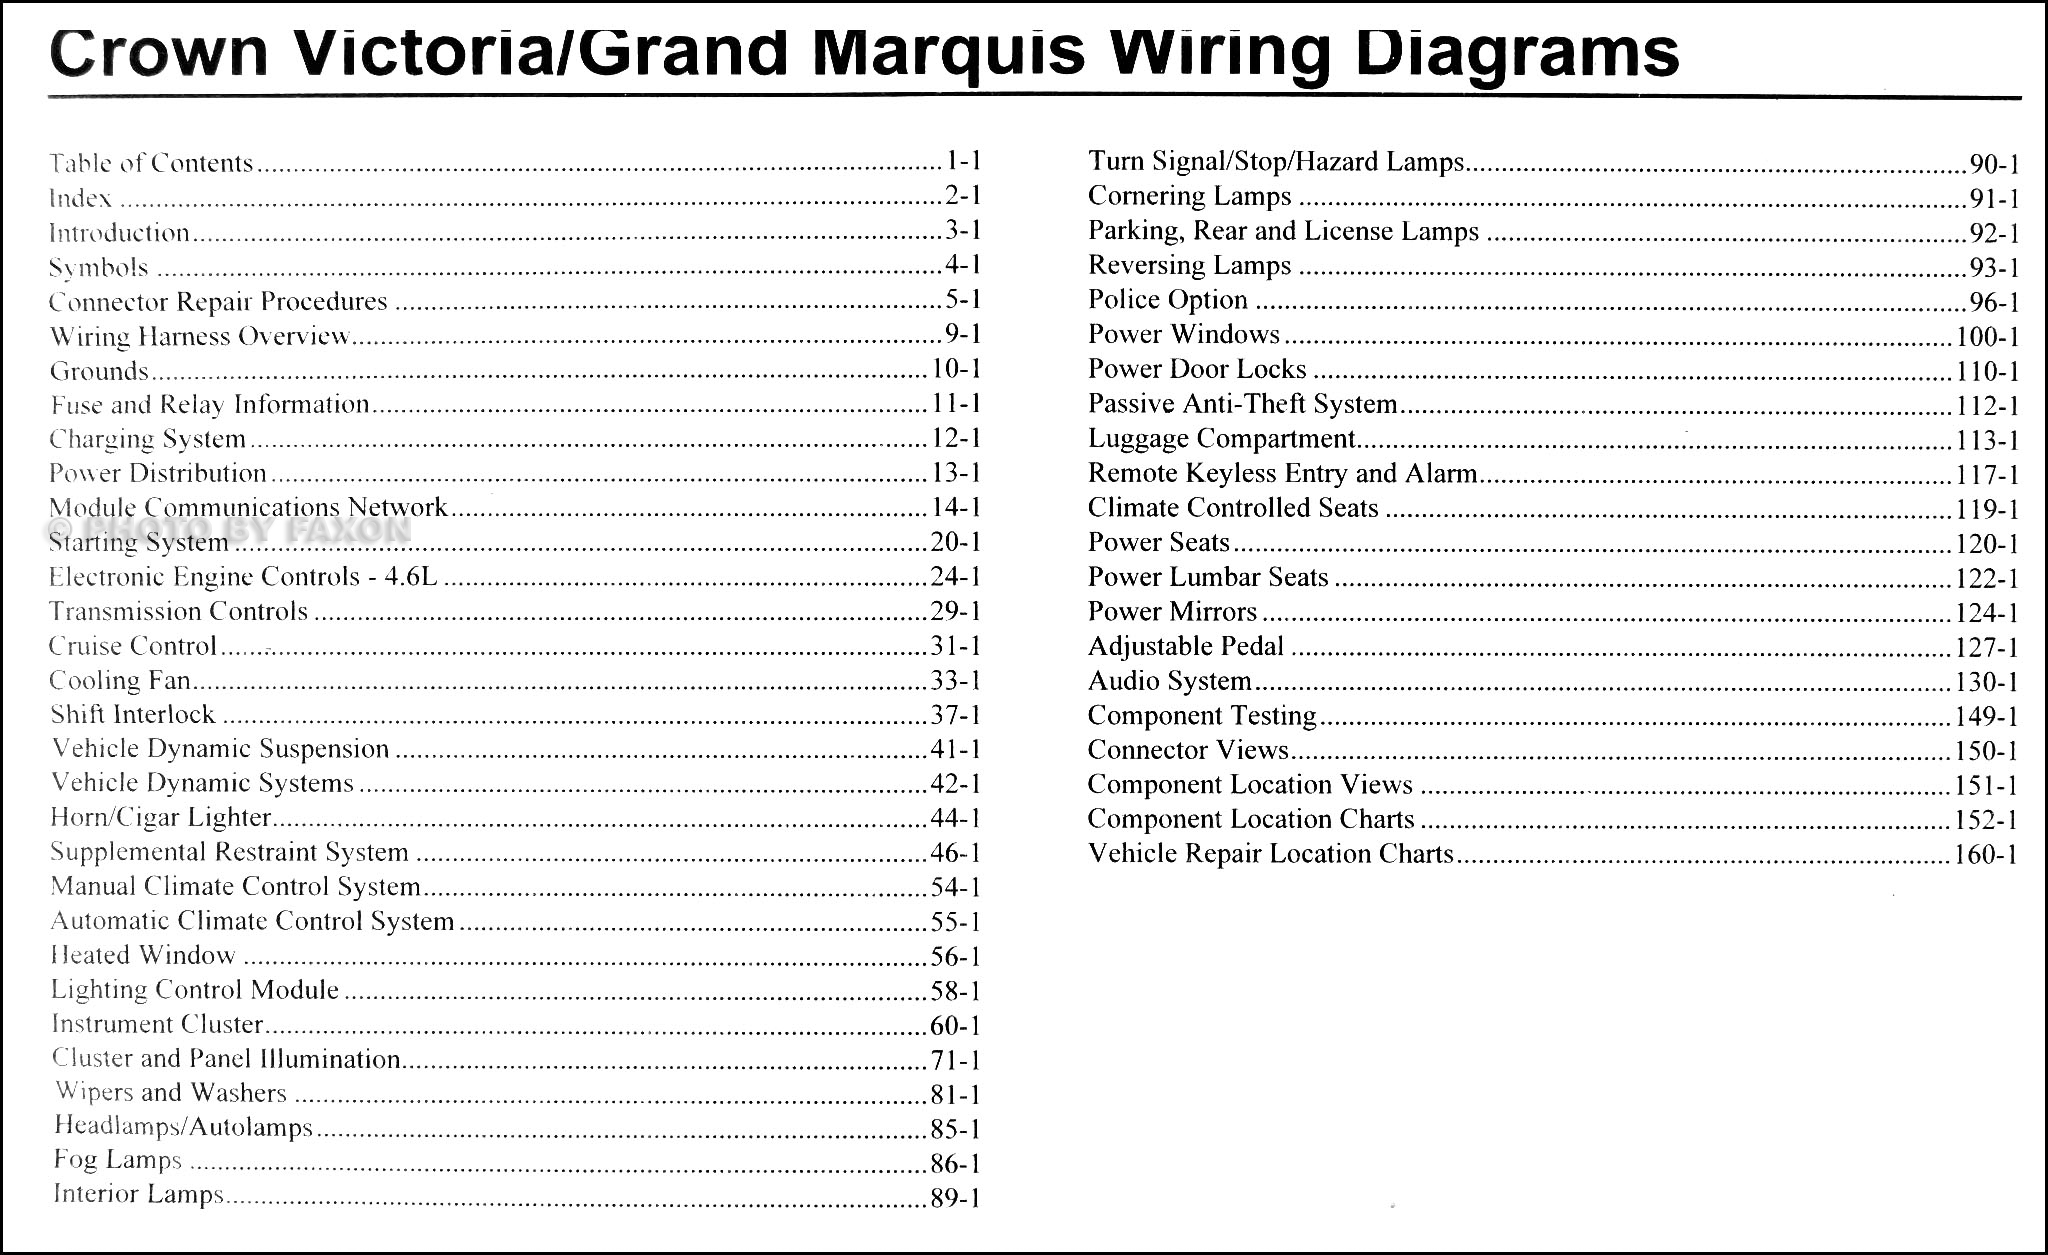 Wiring Diagram 1954 Ford Crown Victoria Html